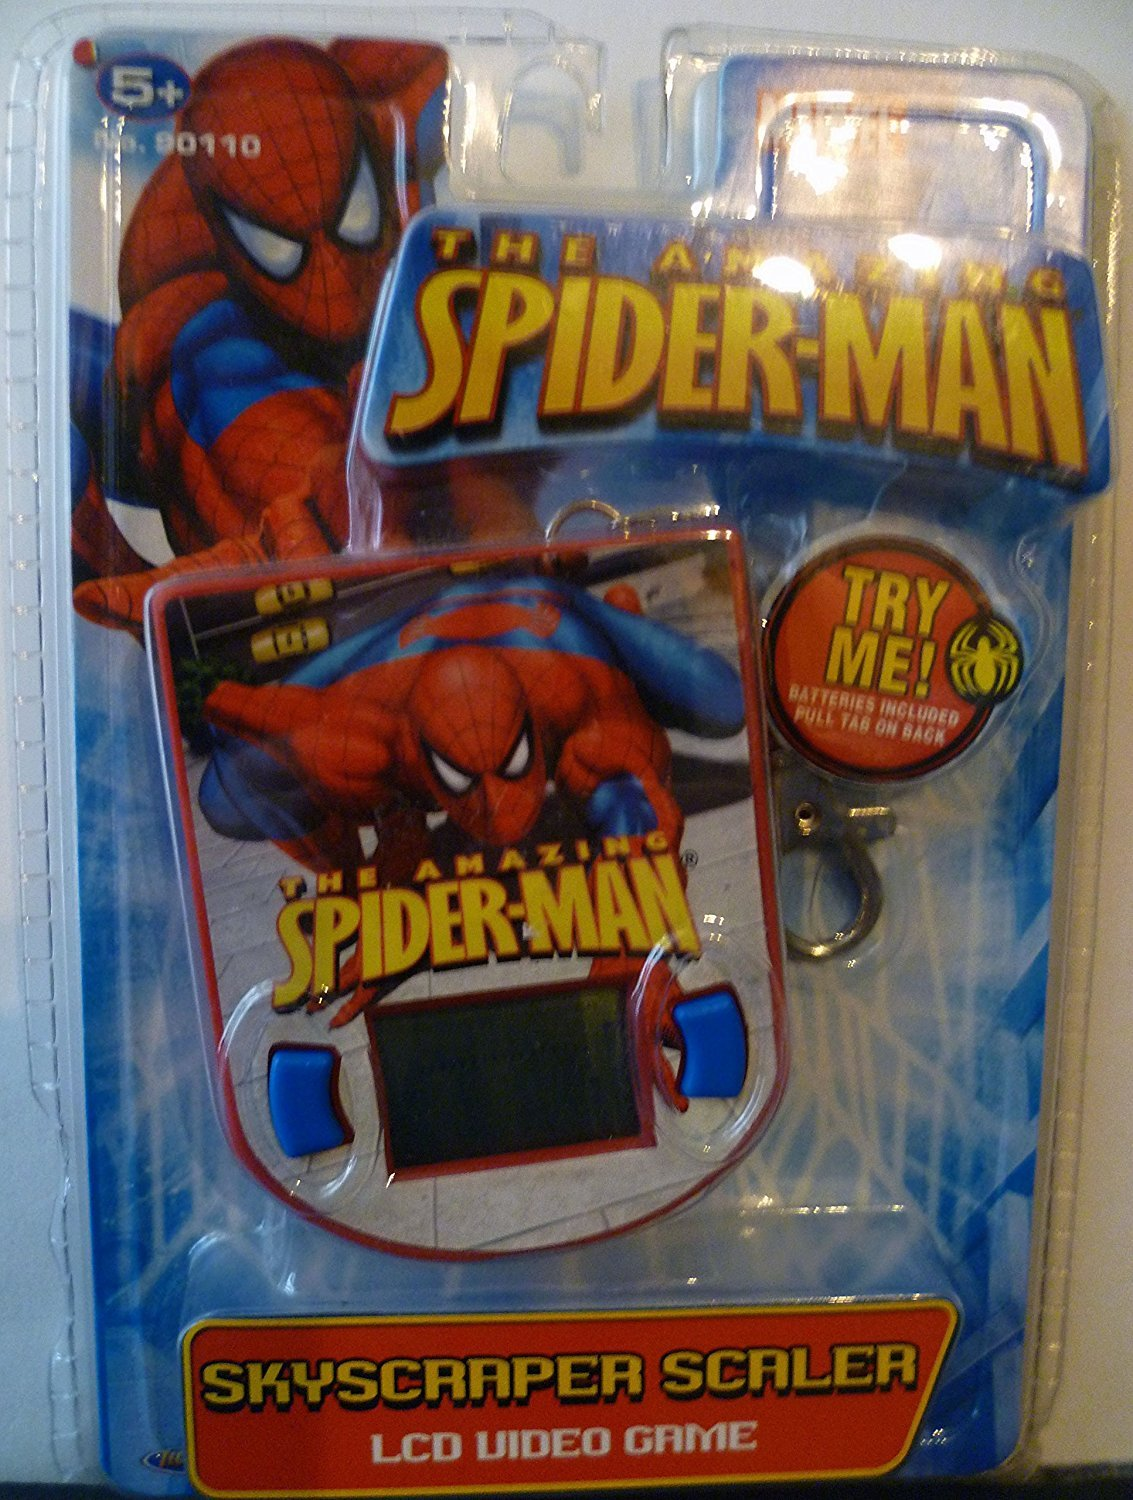 The Amazing Spiderman Skyscraper Scaler LCD Video Game Keychain by Marvel